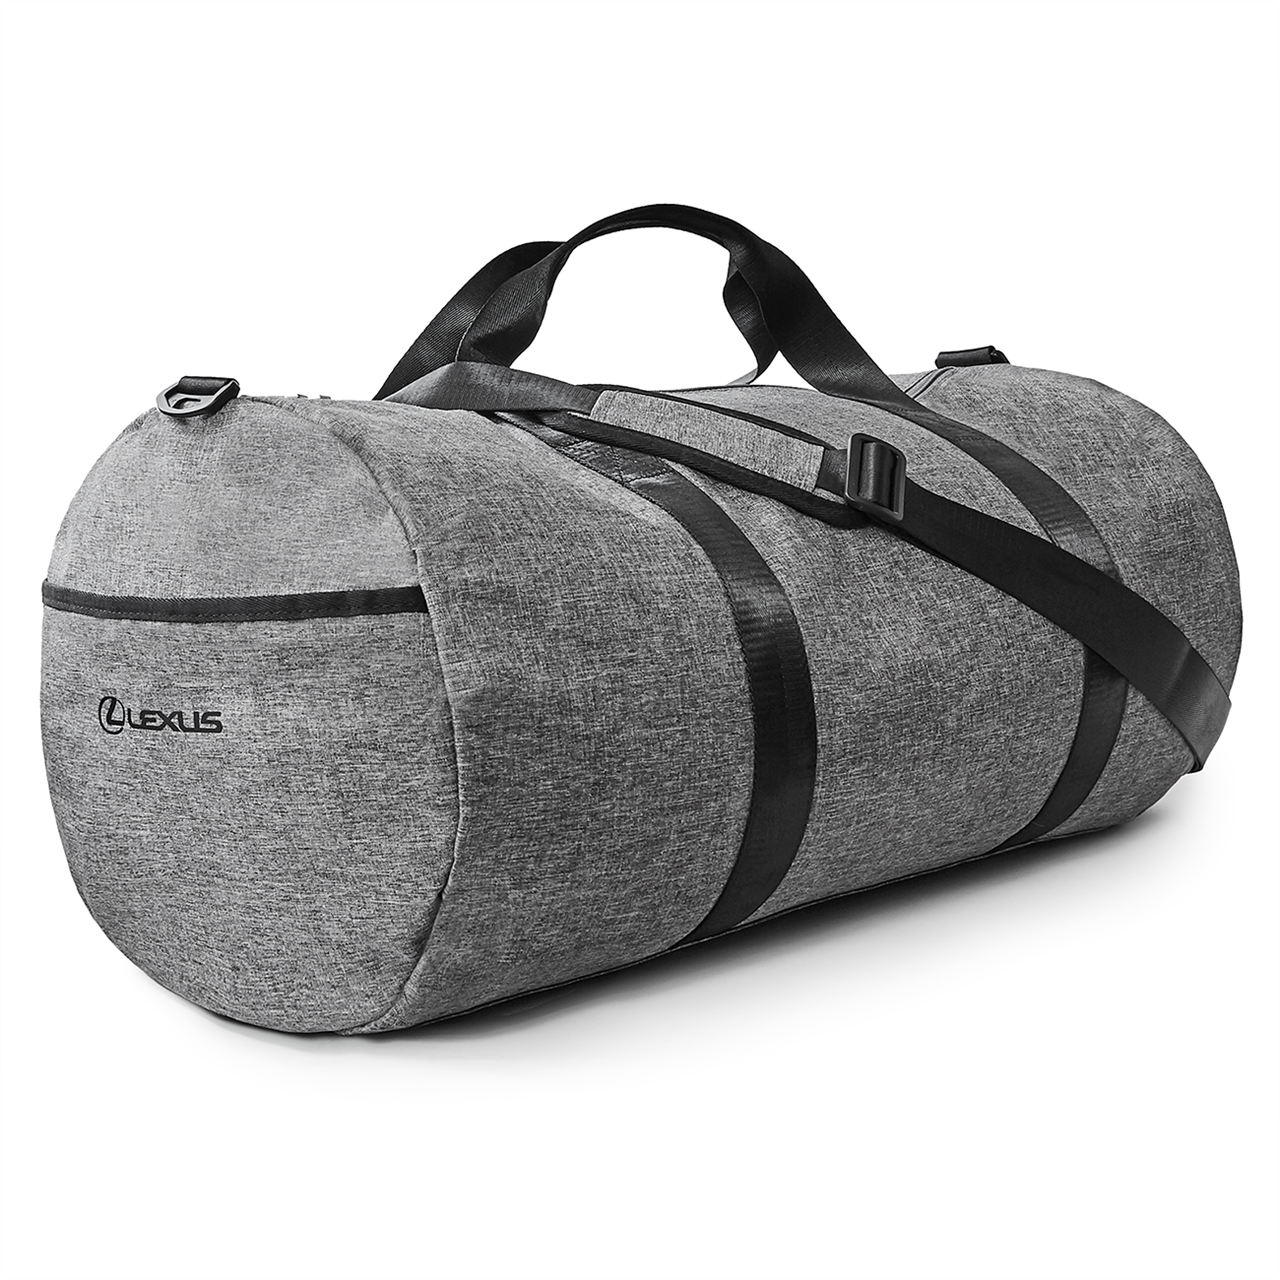 The Grey Trip Duffel